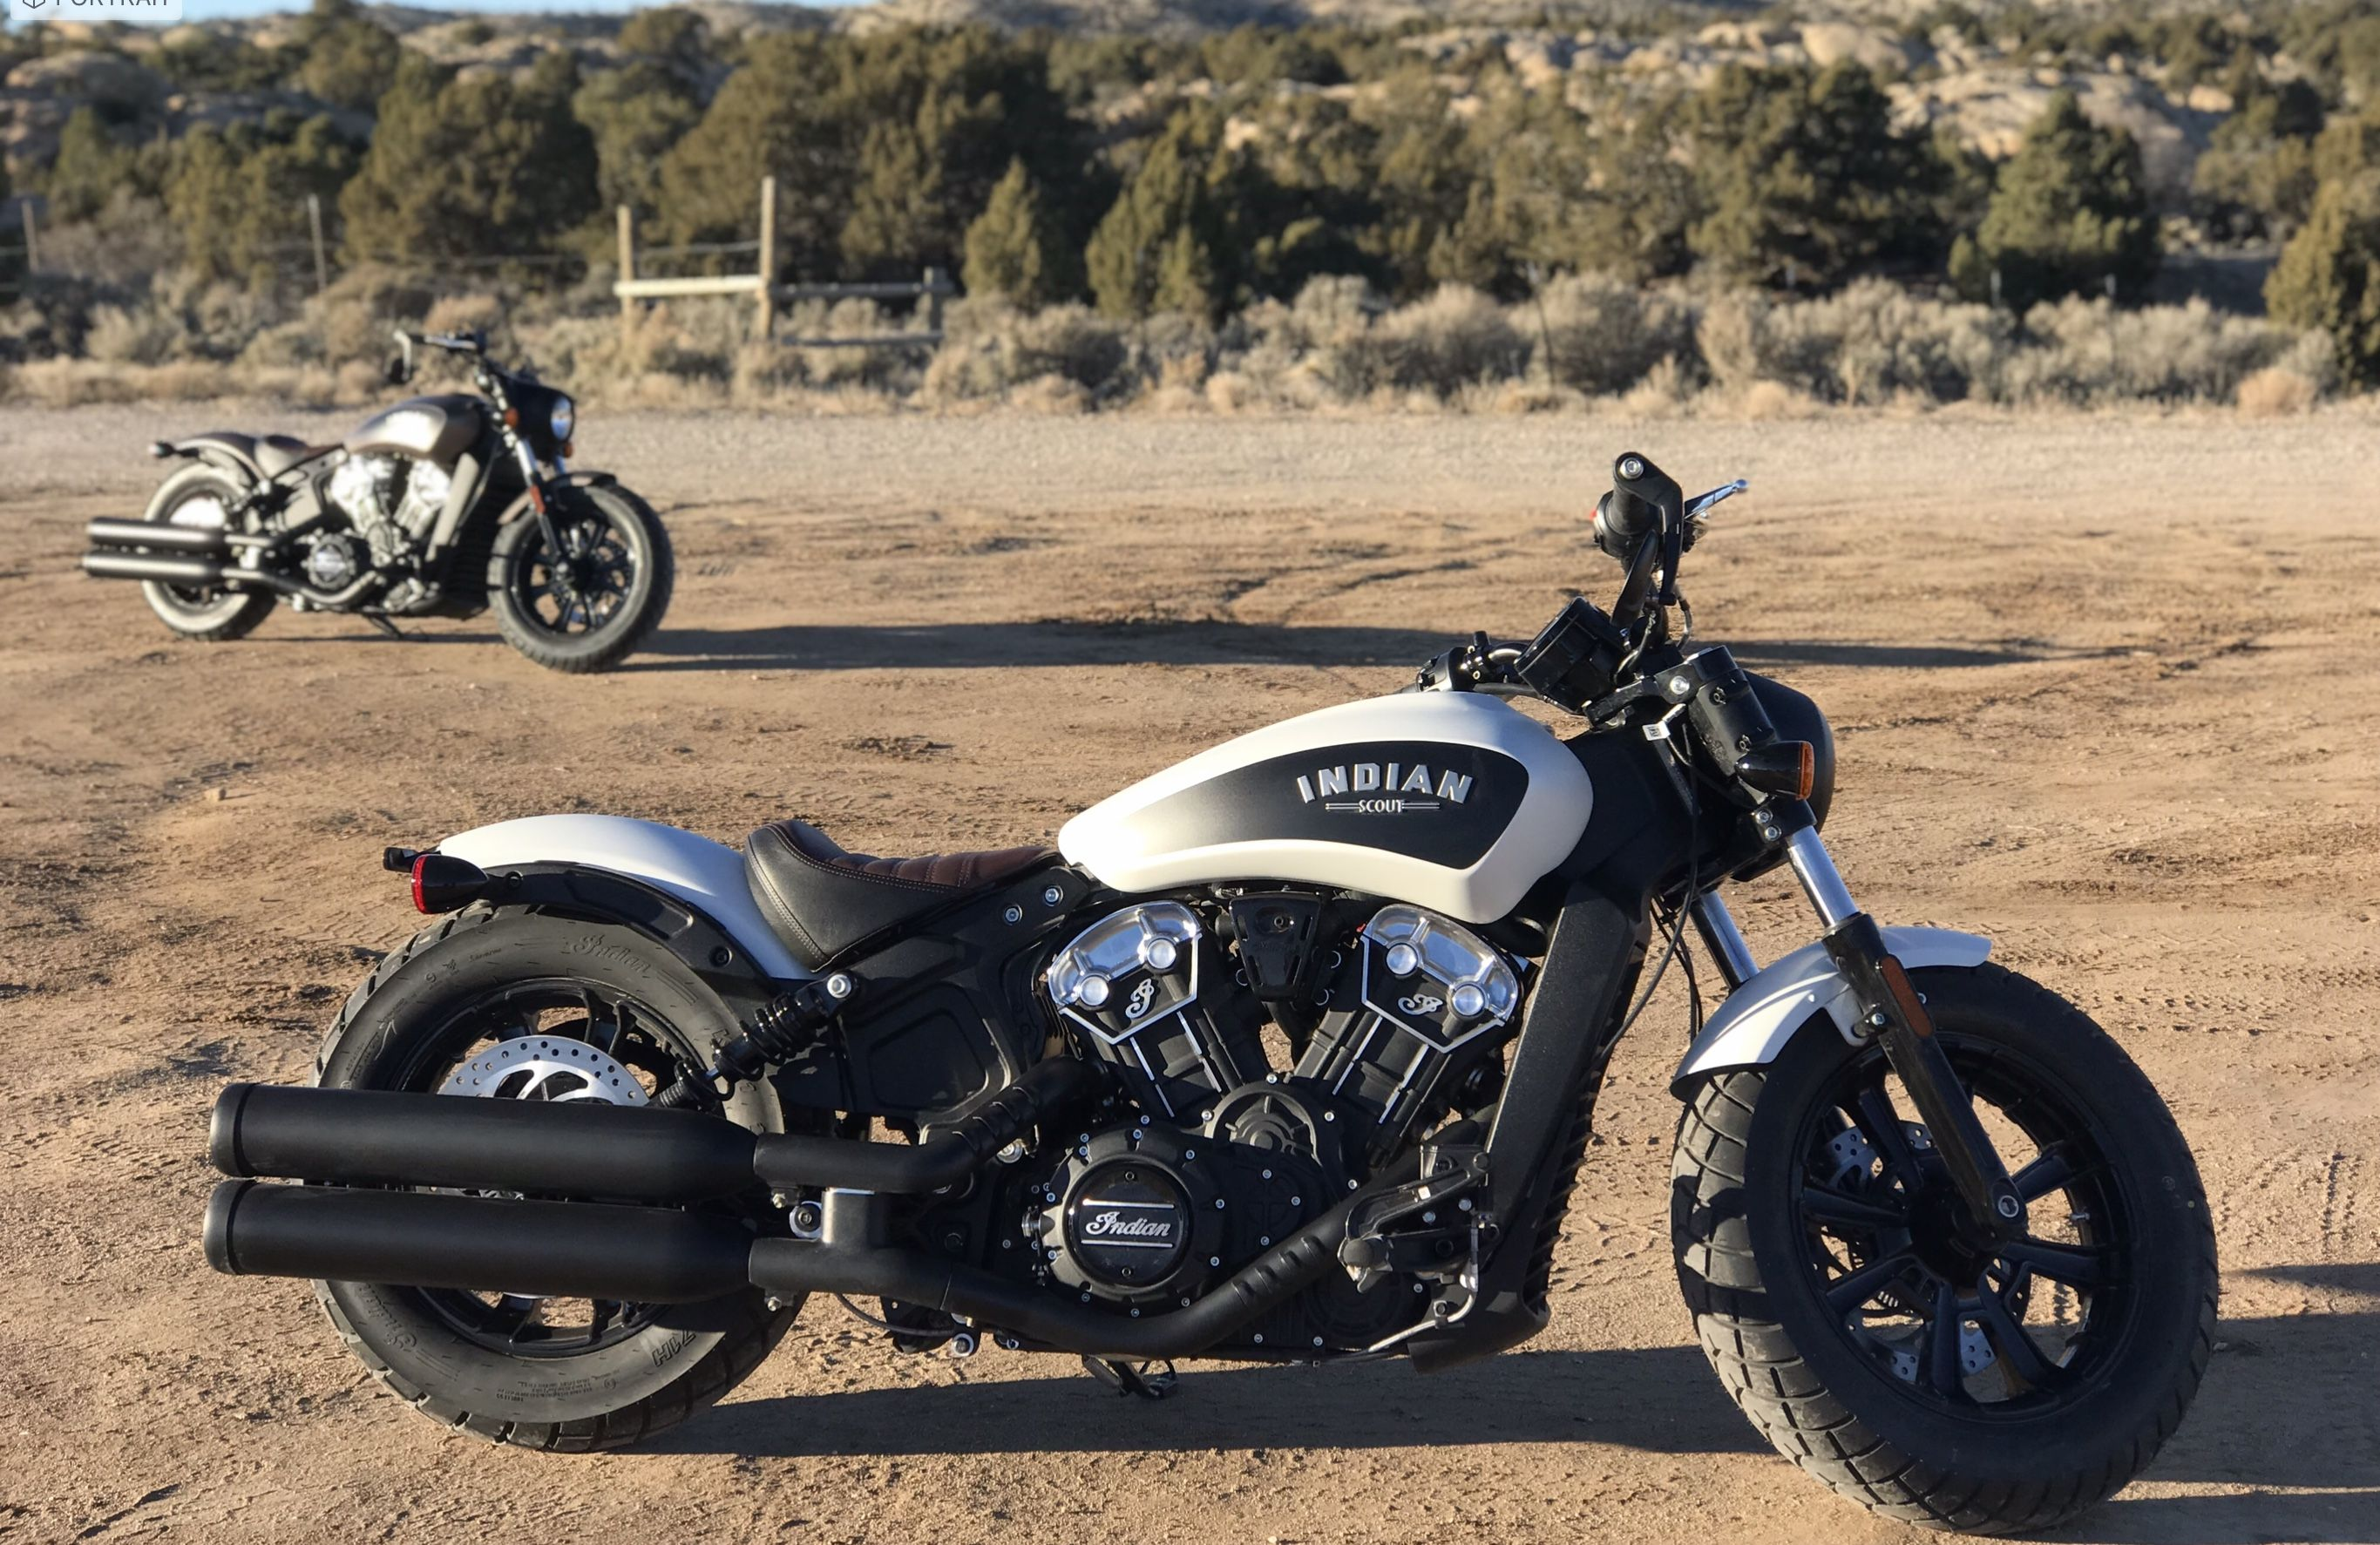 Indian Scout Bobber 2019 Indian scout, Indian motorcycle